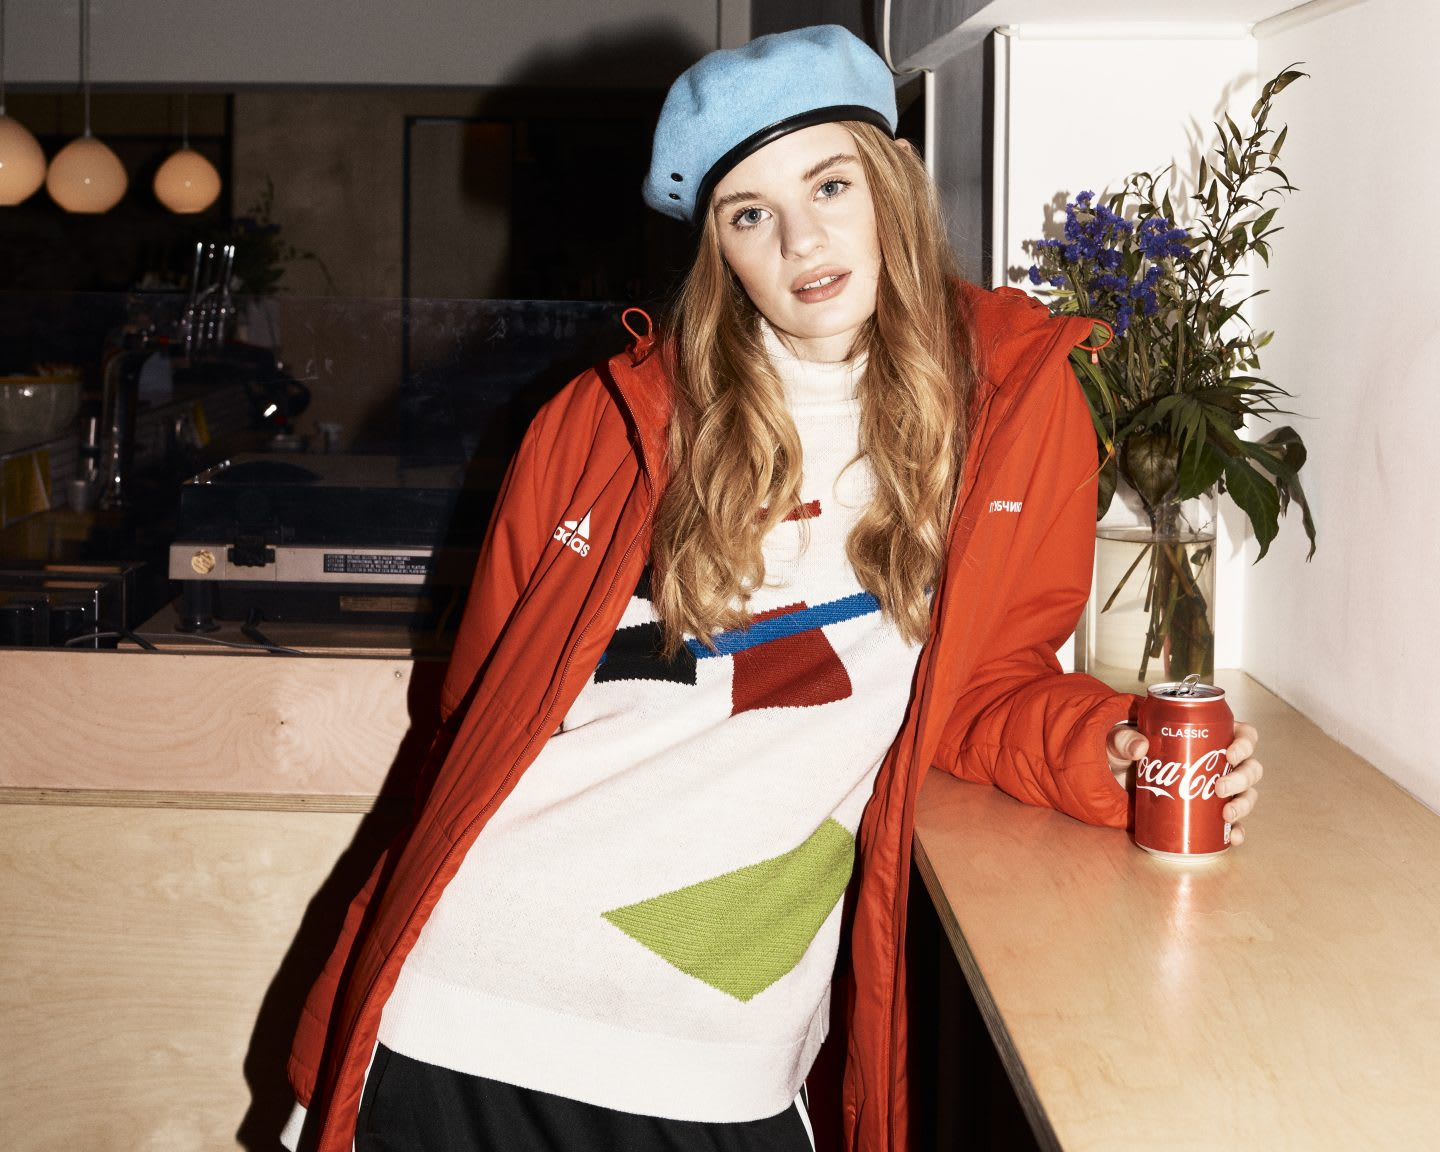 Woman wearing a football fashion look and posing in front of the camera. diversity, empowerment, female fan, football, adidas, GamePlan A, SEASON zine